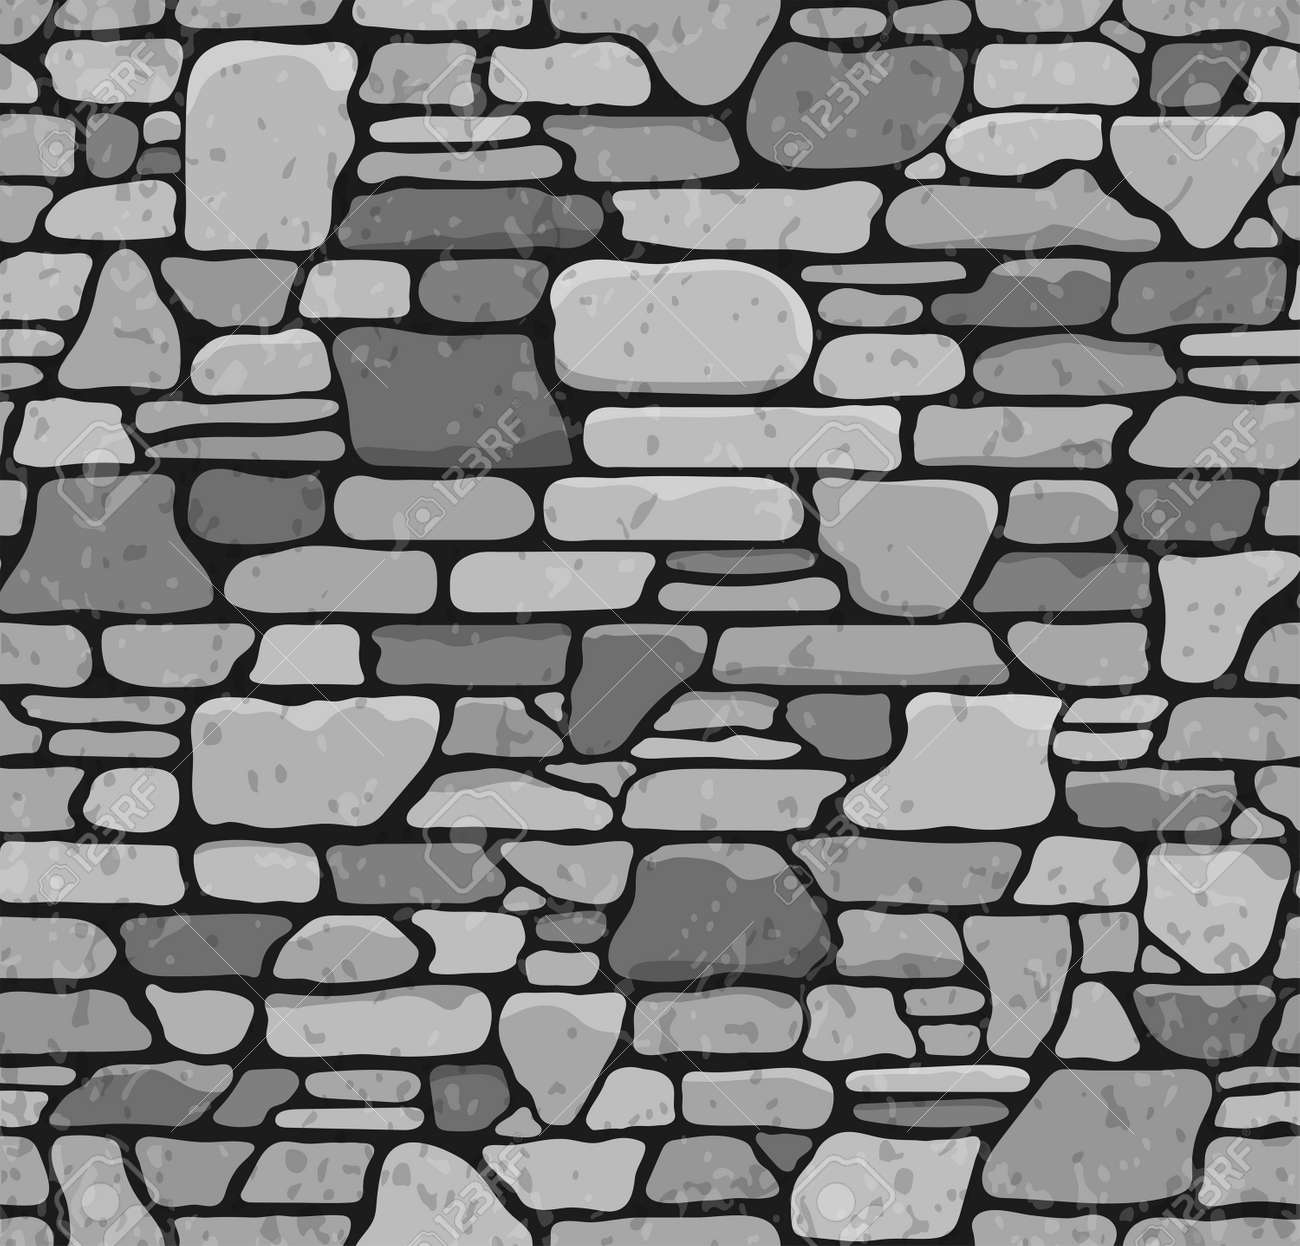 Seamless Grunge Stone Brick Wall Texture Vector Illustration Stock